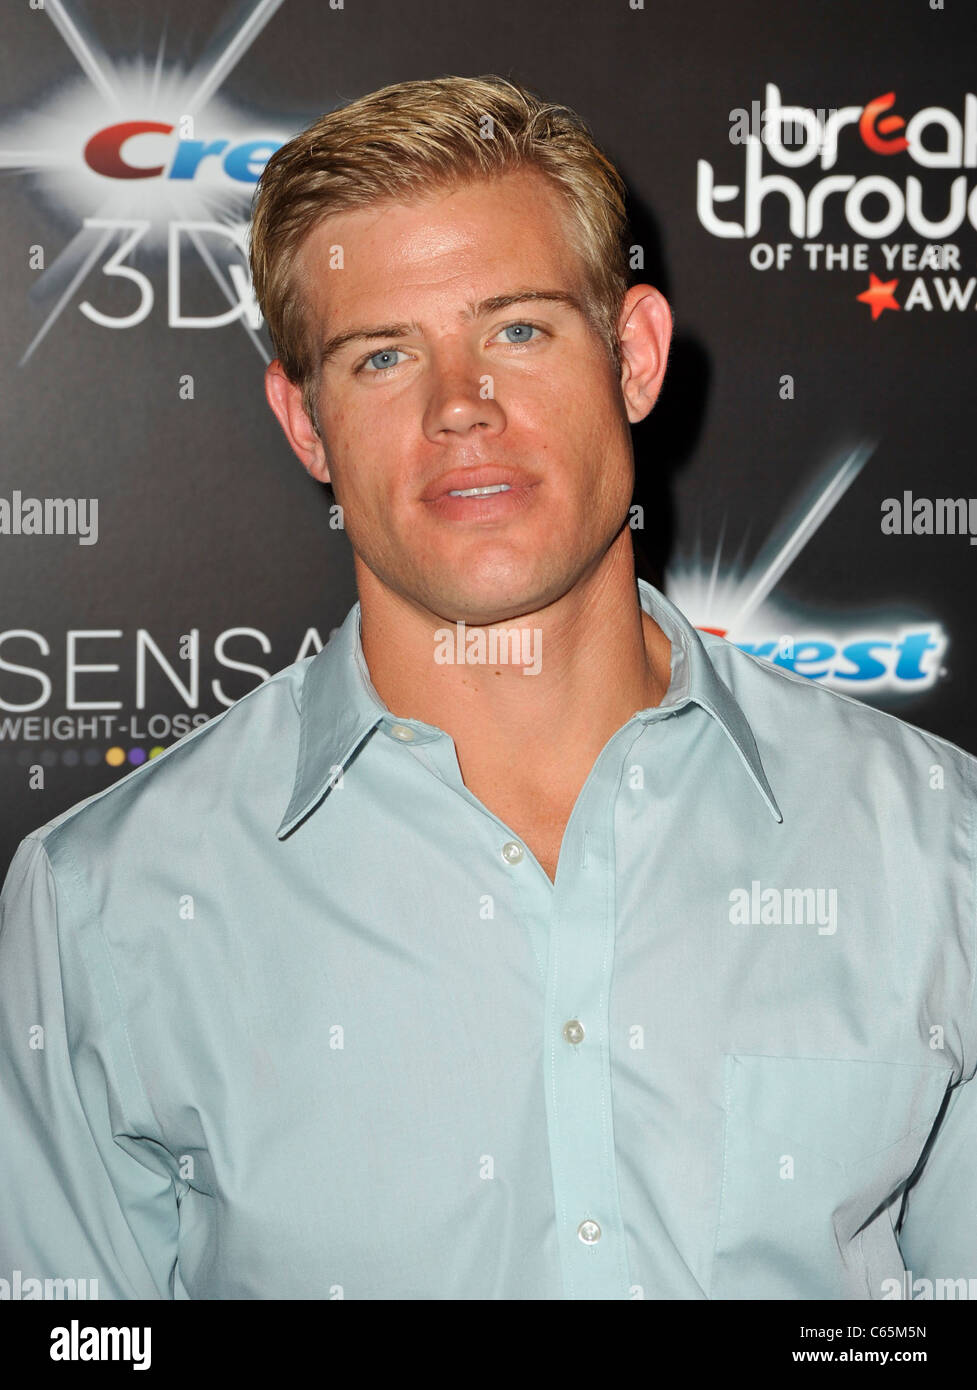 Trevor Donovan at arrivals for 2010 Breakthrough of the Year Awards, Pacific Design Center, Los Angeles, CA August Stock Photo